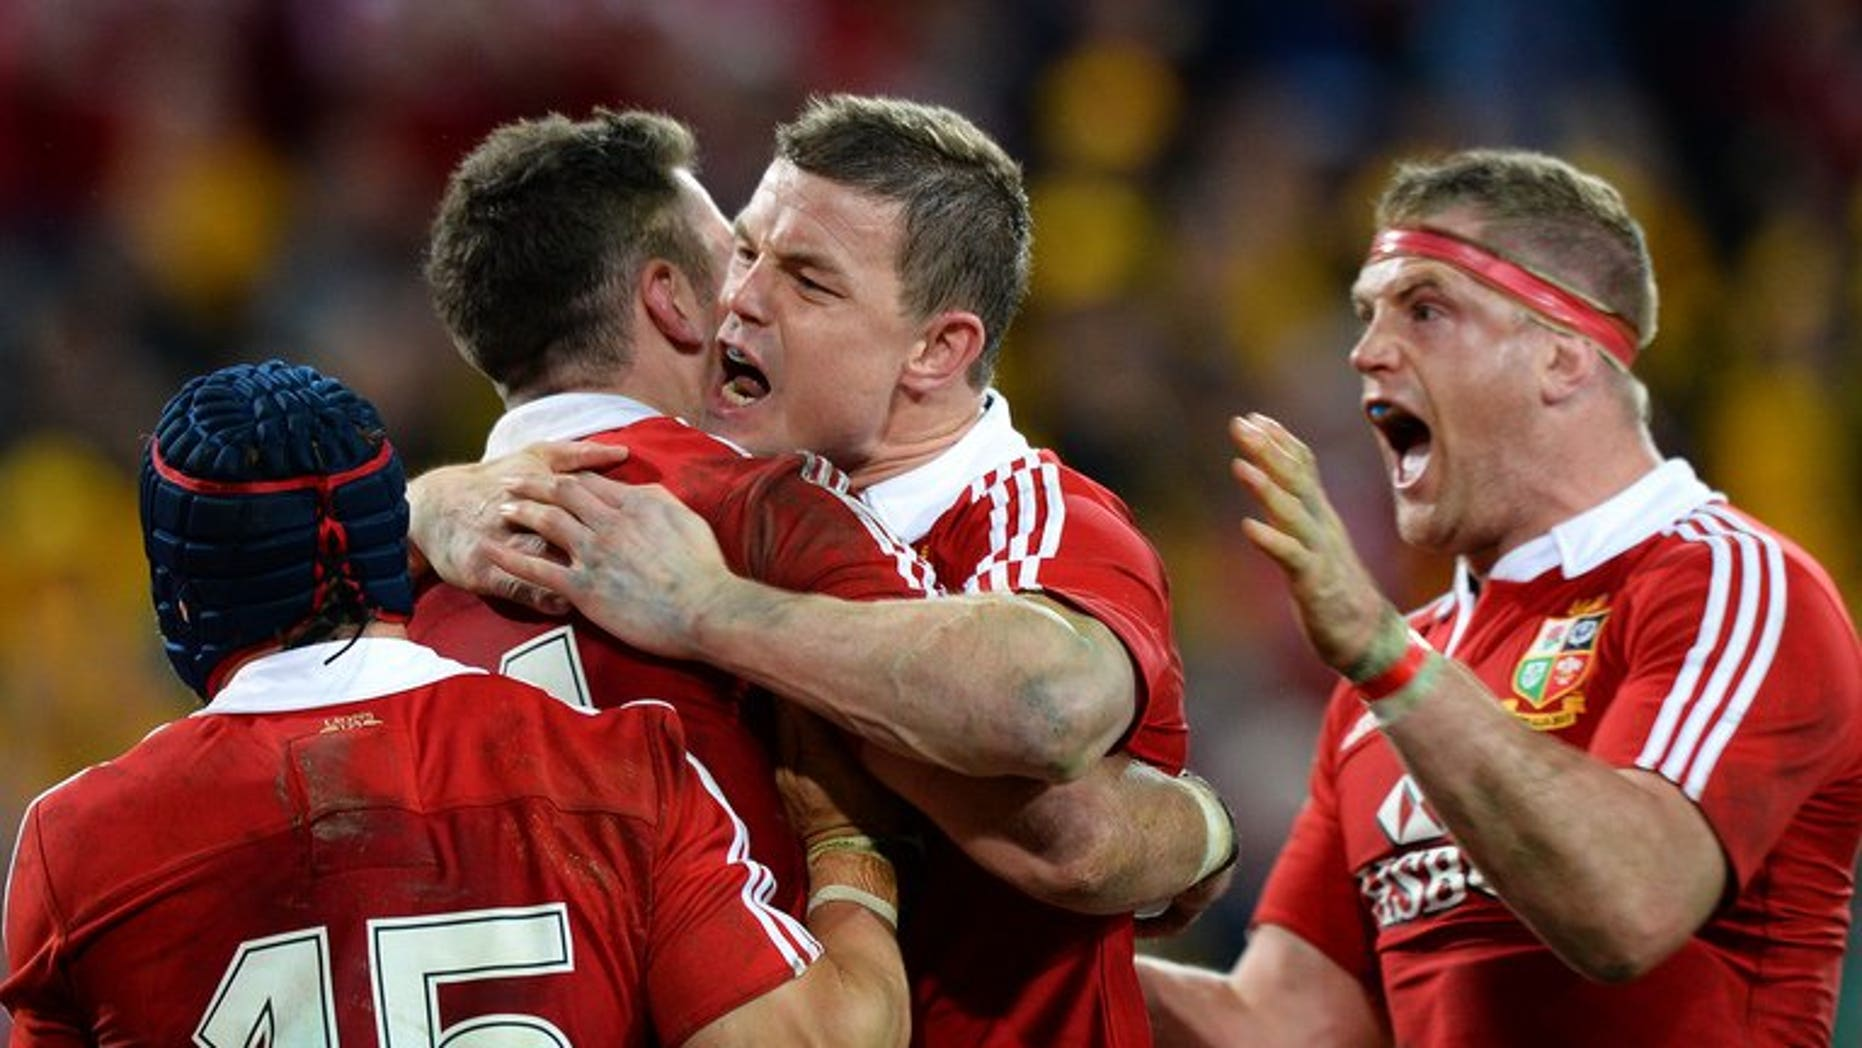 """The British and Irish Lions celebrate Alex Cuthbert's try against Australia on June 22, 2013. The thrilling 23-21 first Test win over Australia was """"larceny"""" and the rest of the series will be a similarly nerve-shredding affair, Britain's newspapers warned."""